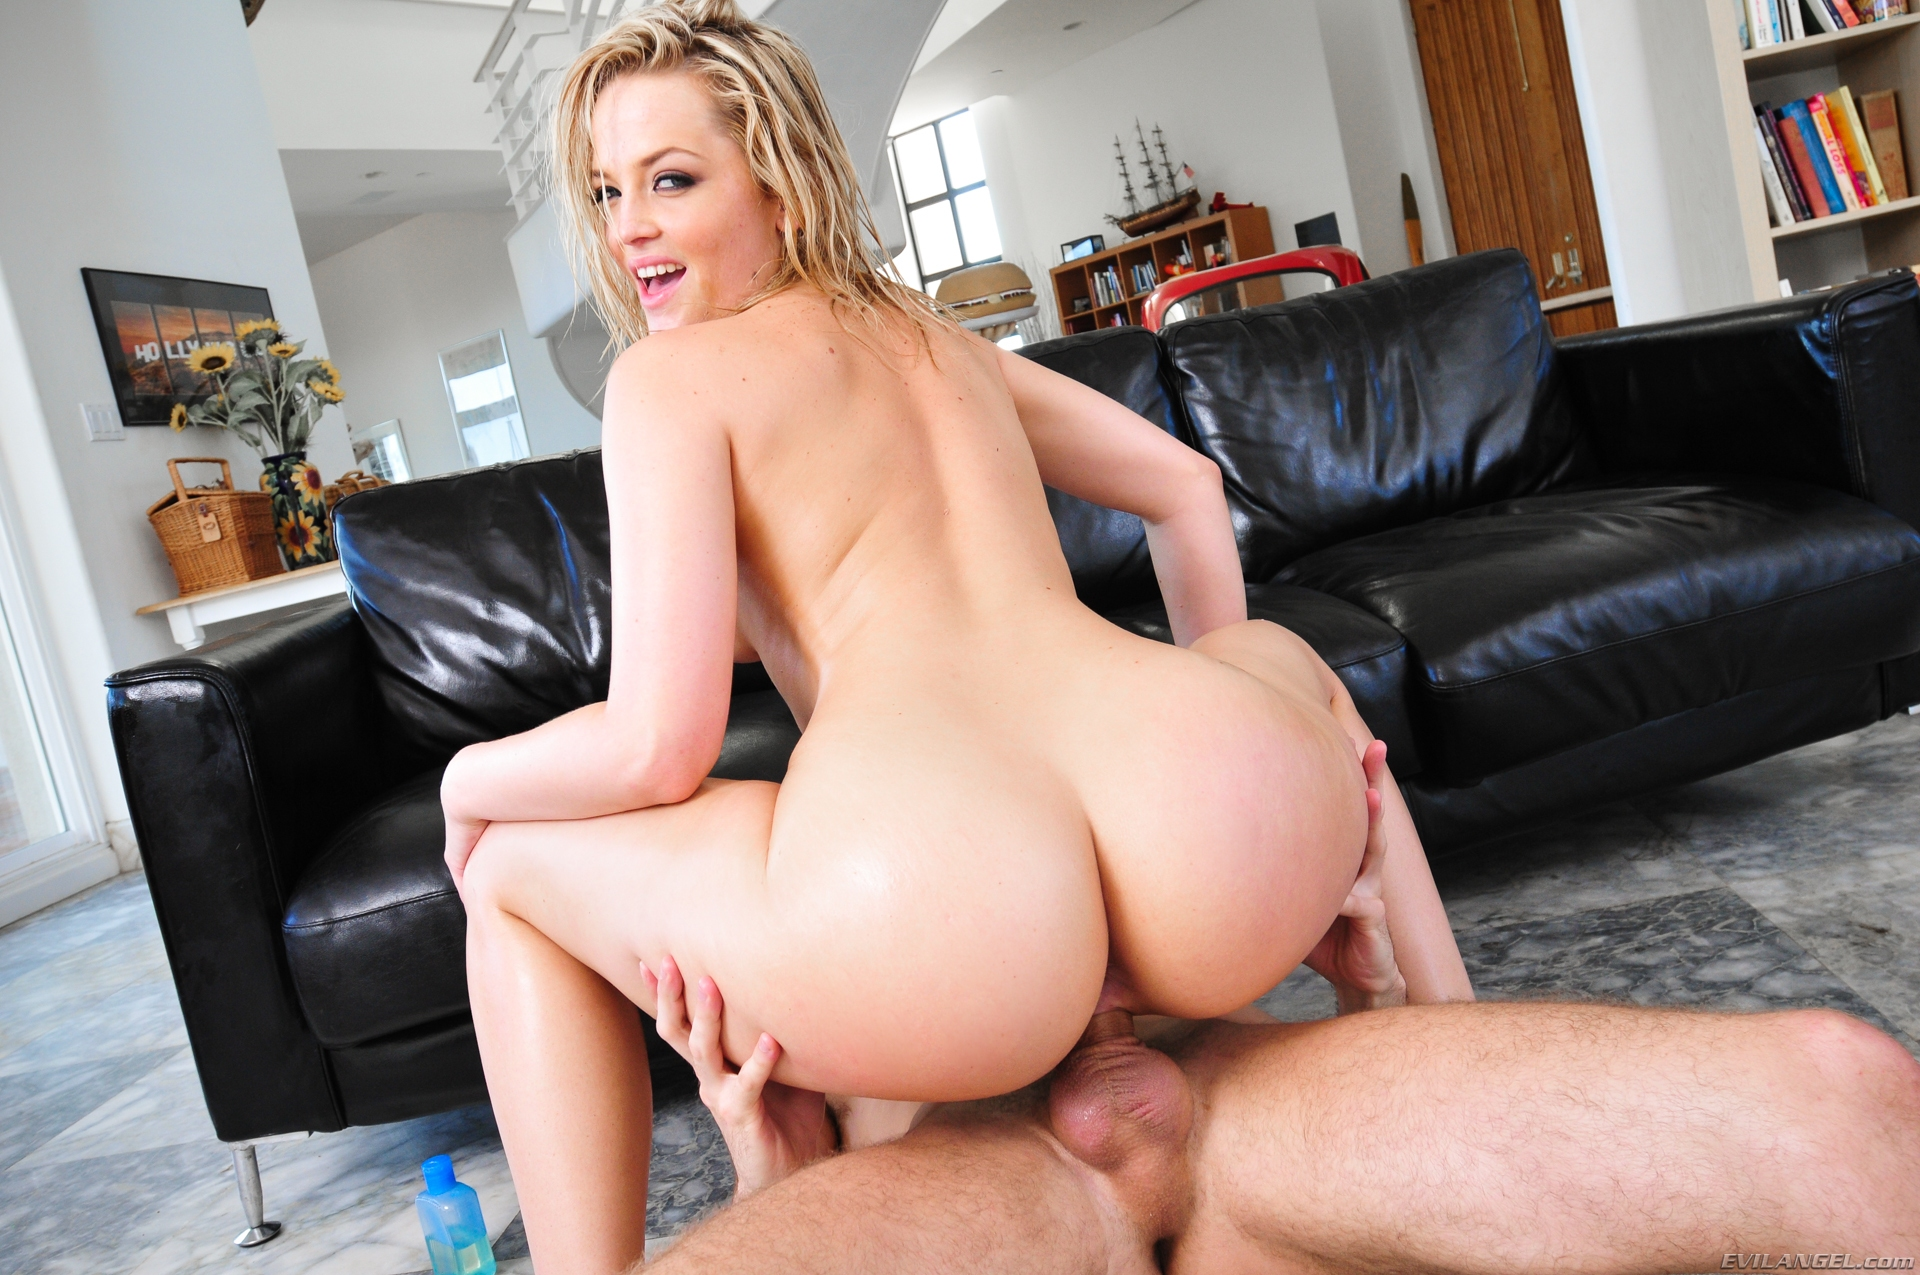 Hot naughty wife alexis texas getting fucked in the kitchen